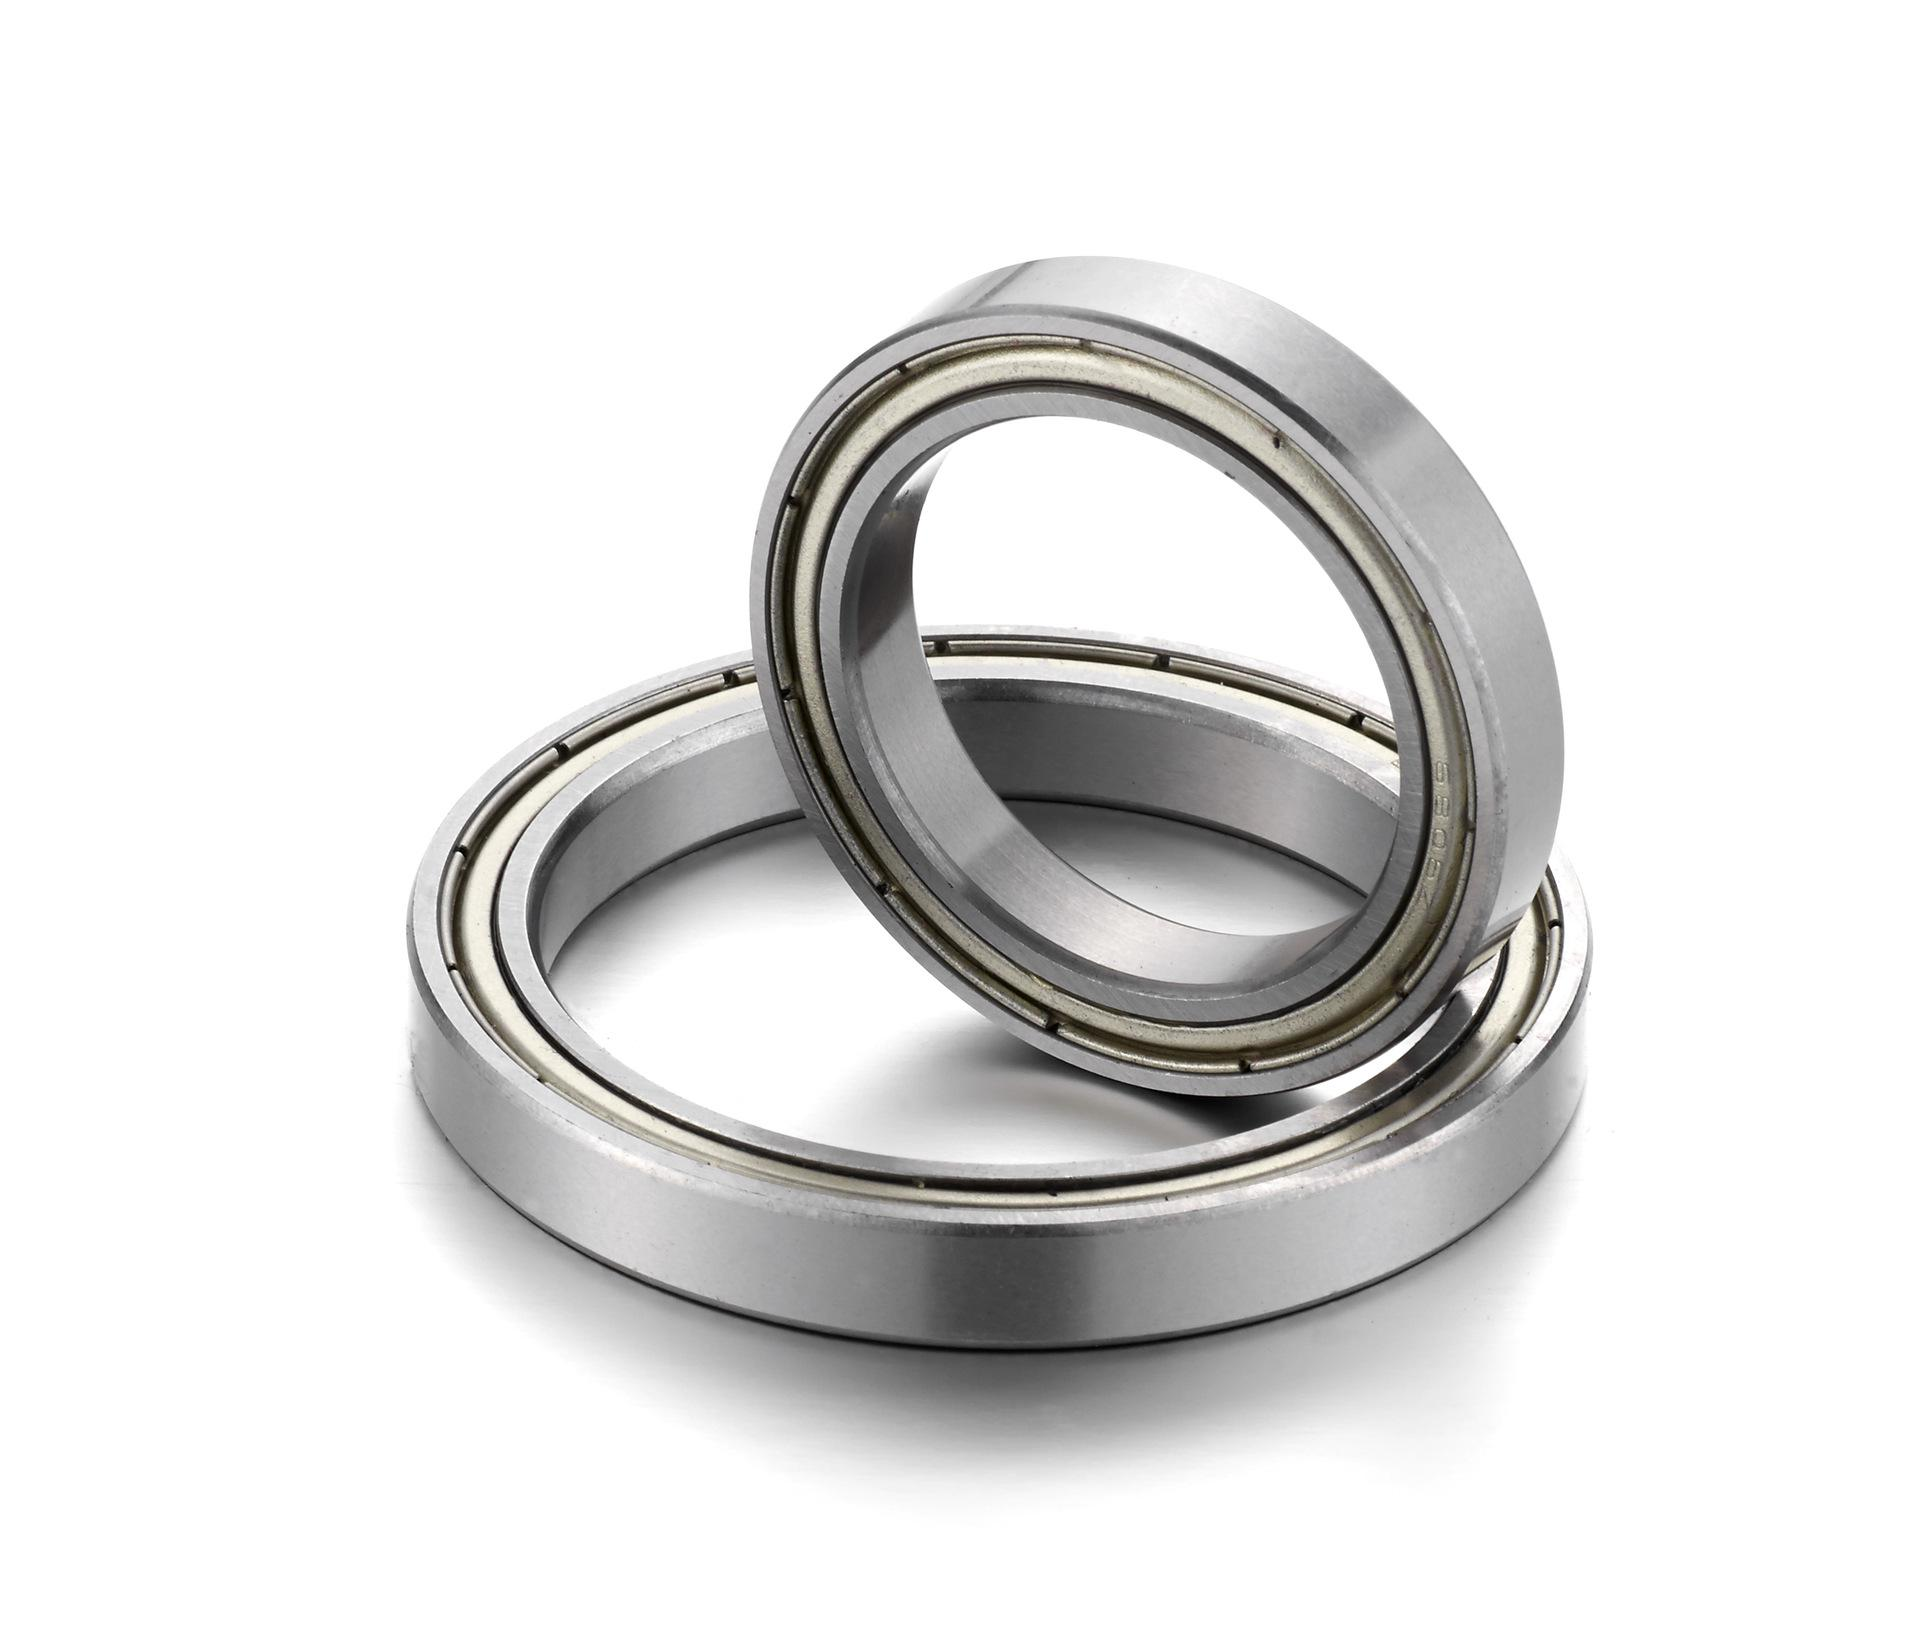 ФОТО 6832M ABEC-1  160x200x20MM  Metric Thin Section Bearings 61832M Brass cage